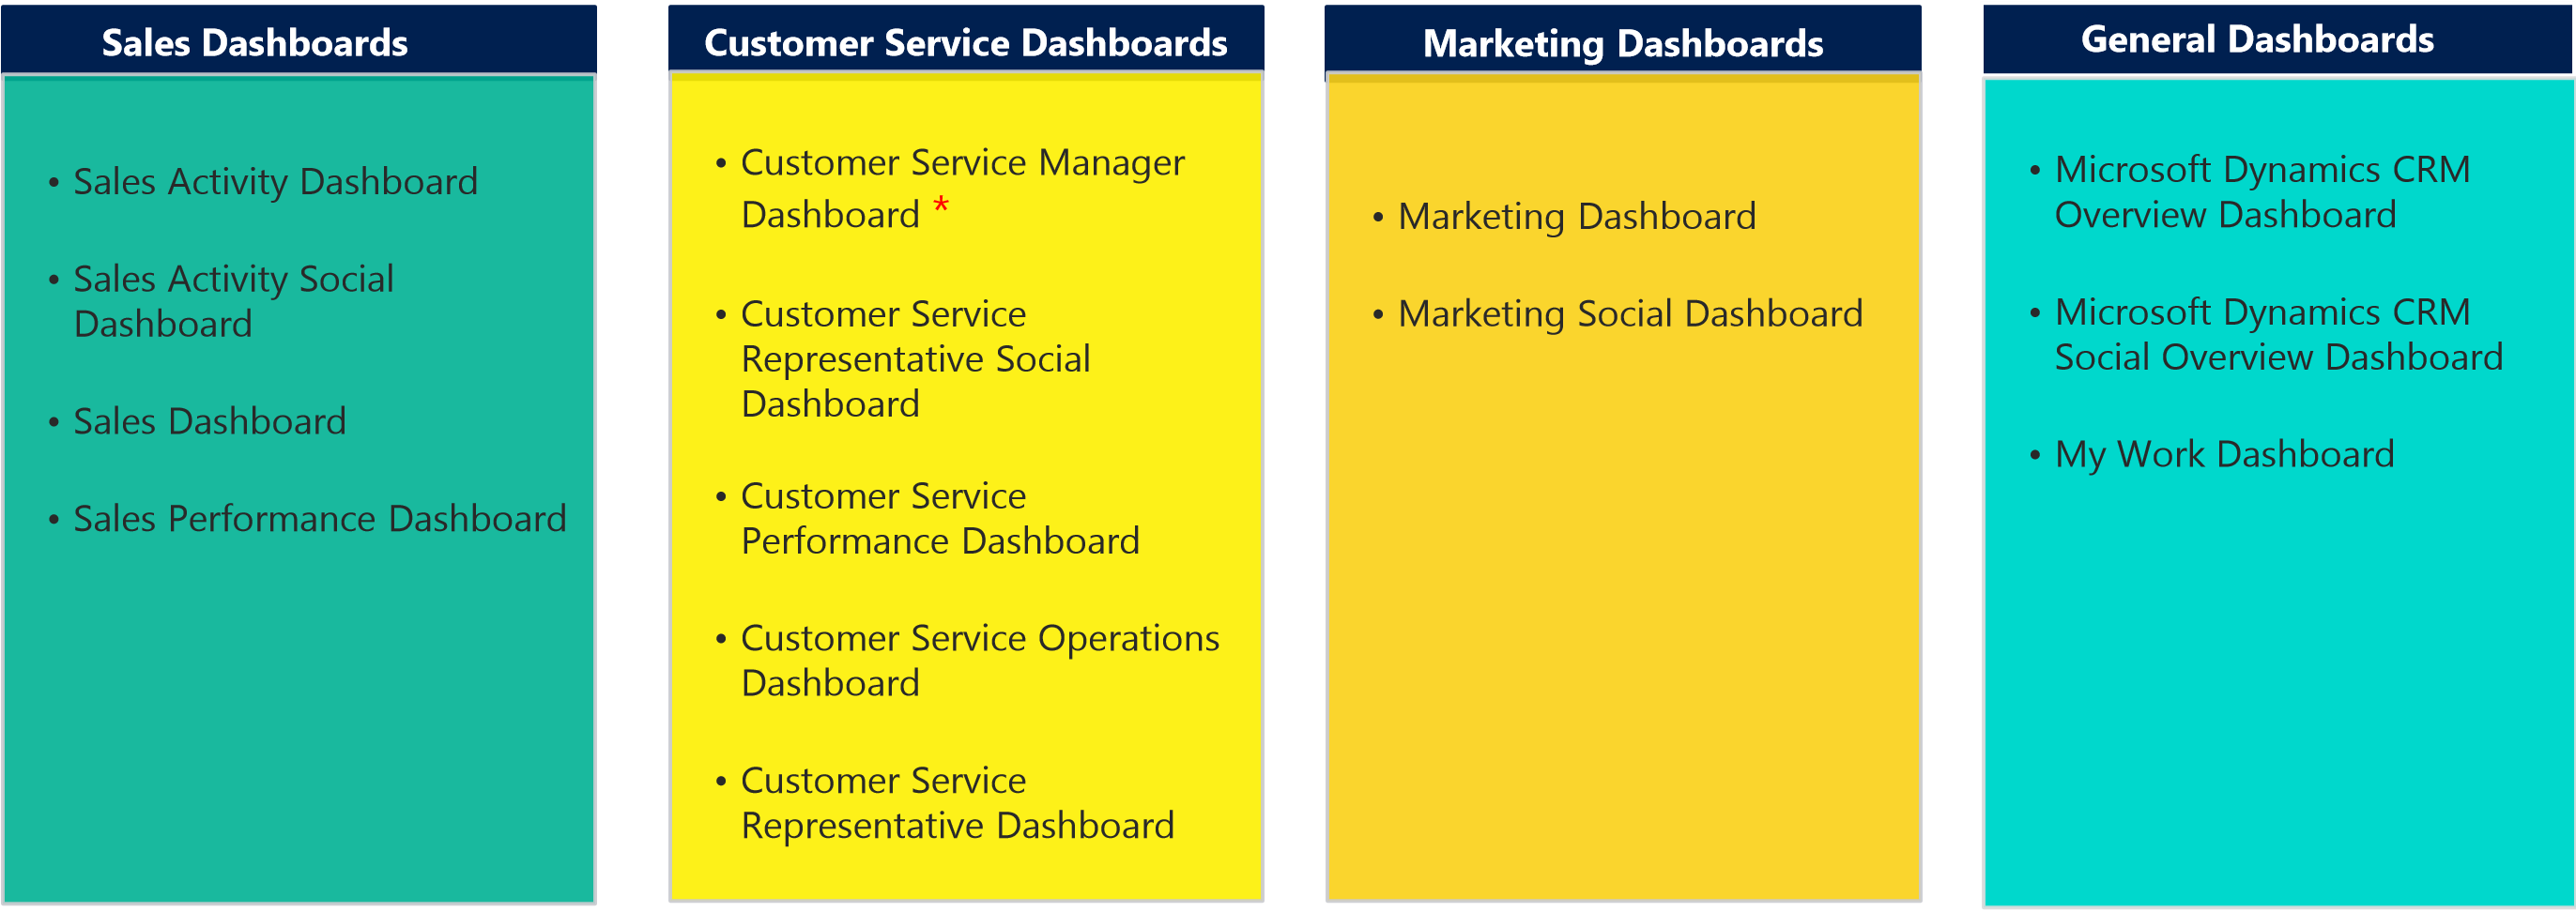 Dynamic CRM 2013 - DashBoards - 12.png